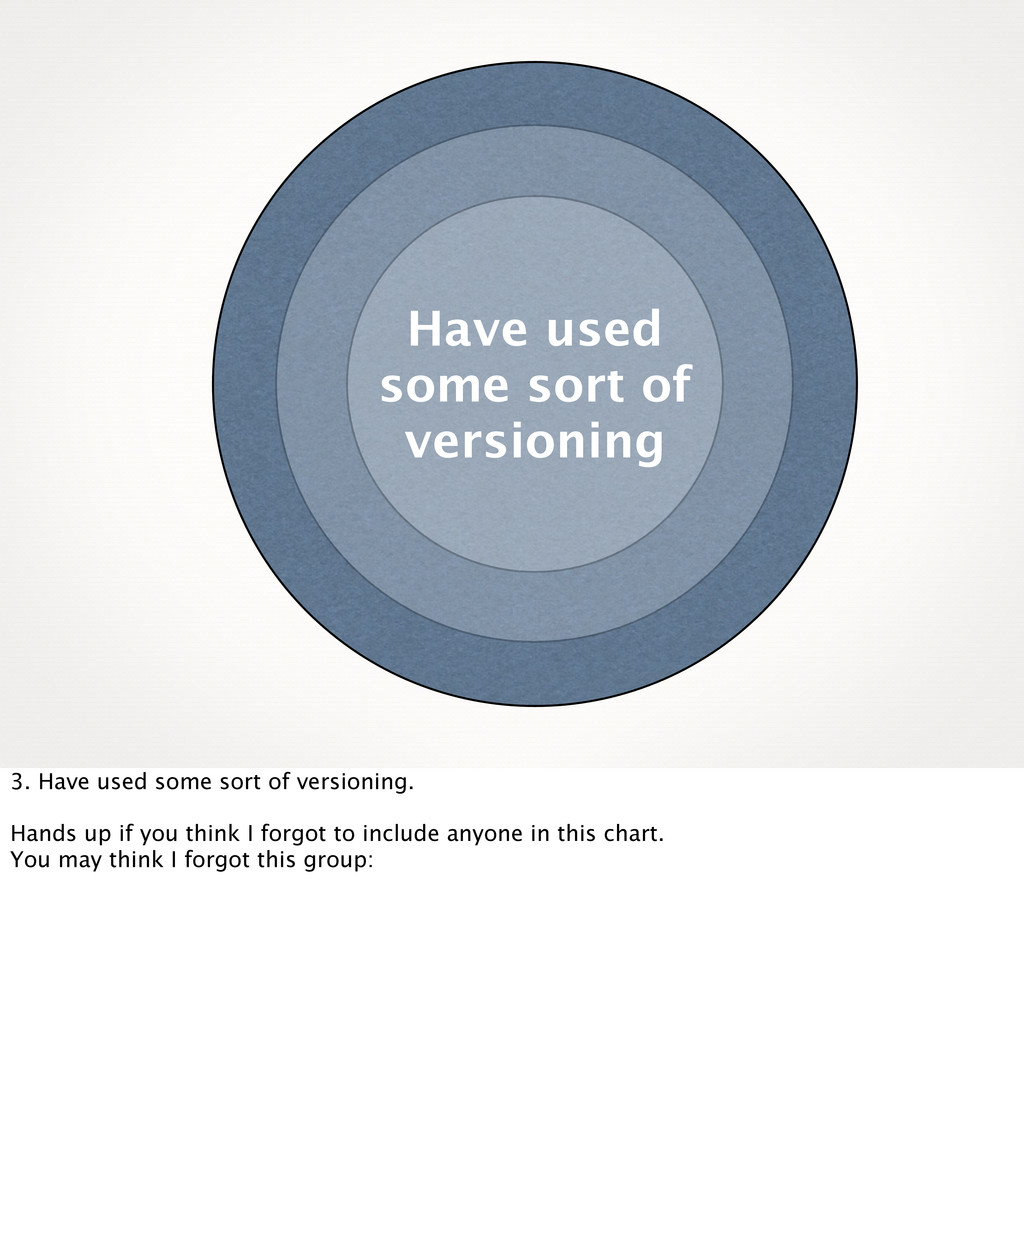 Have used some sort of versioning 3. Have used ...